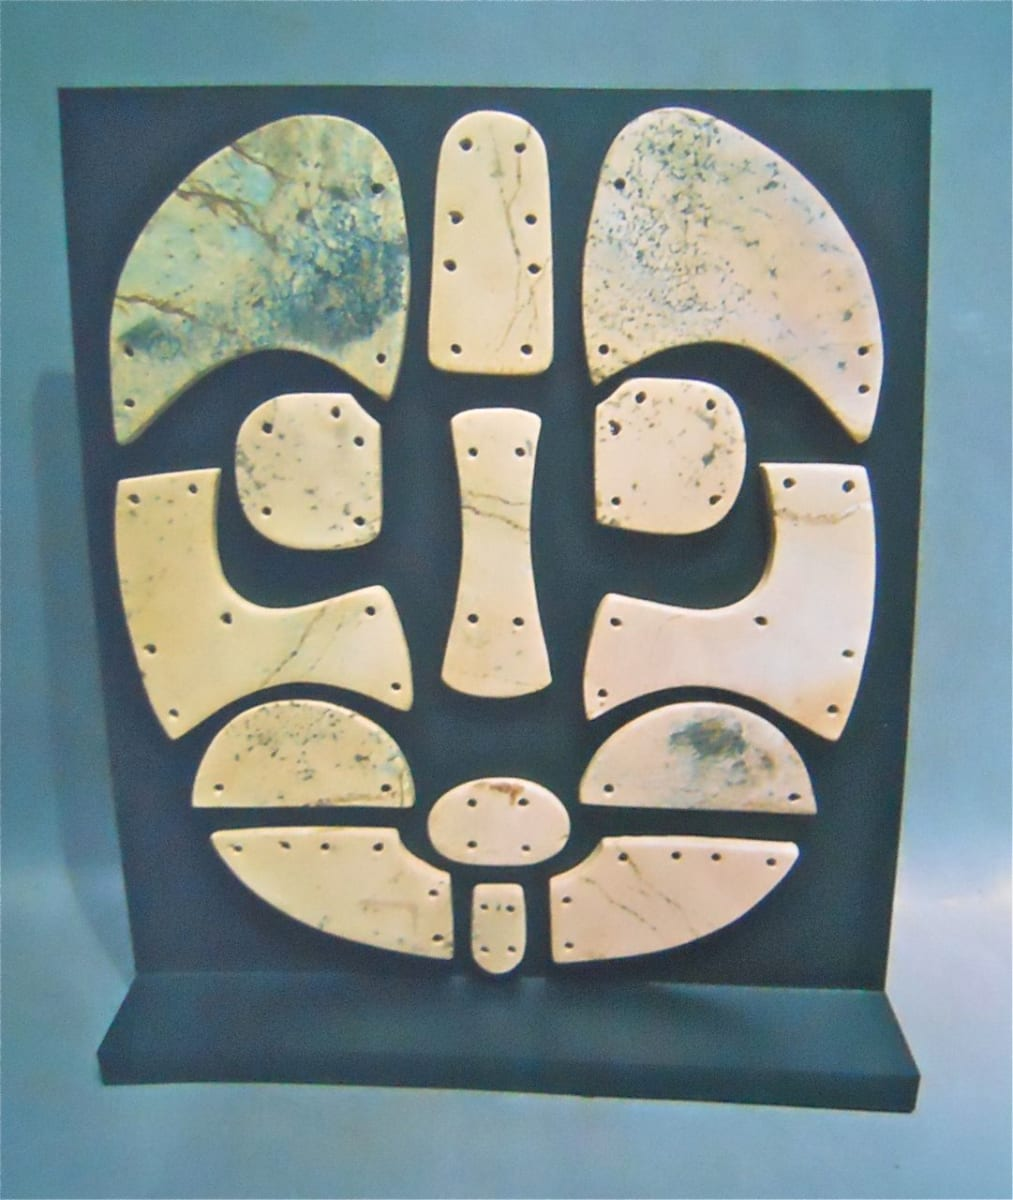 Mosaic Tile Mask, Late Neolithic, Gansu Area, China (1) by Unknown